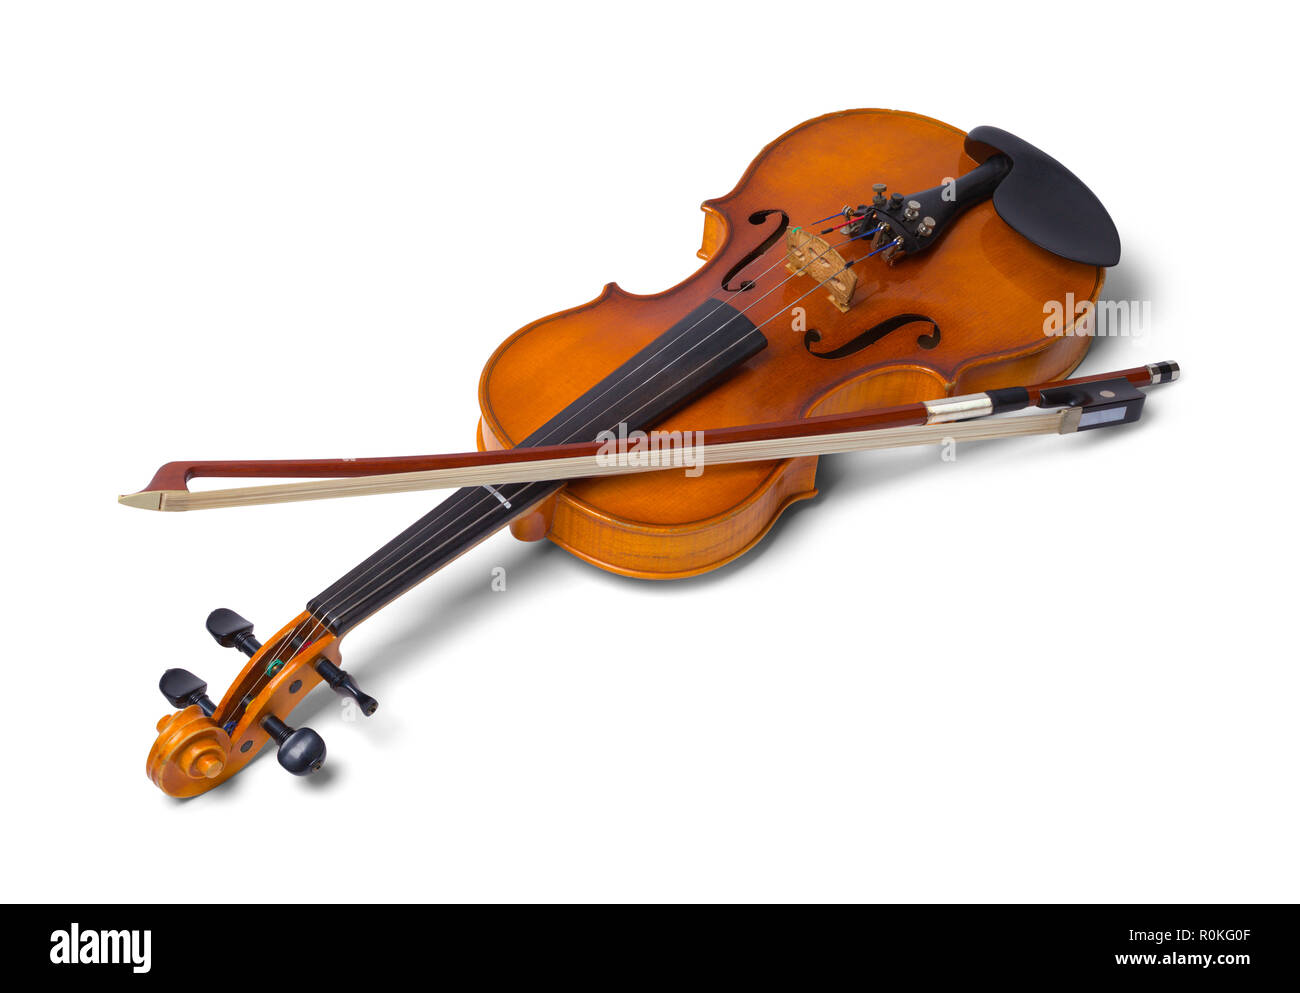 52a8dfb633be Violin with Bow Isolated on a White Background. - Stock Image